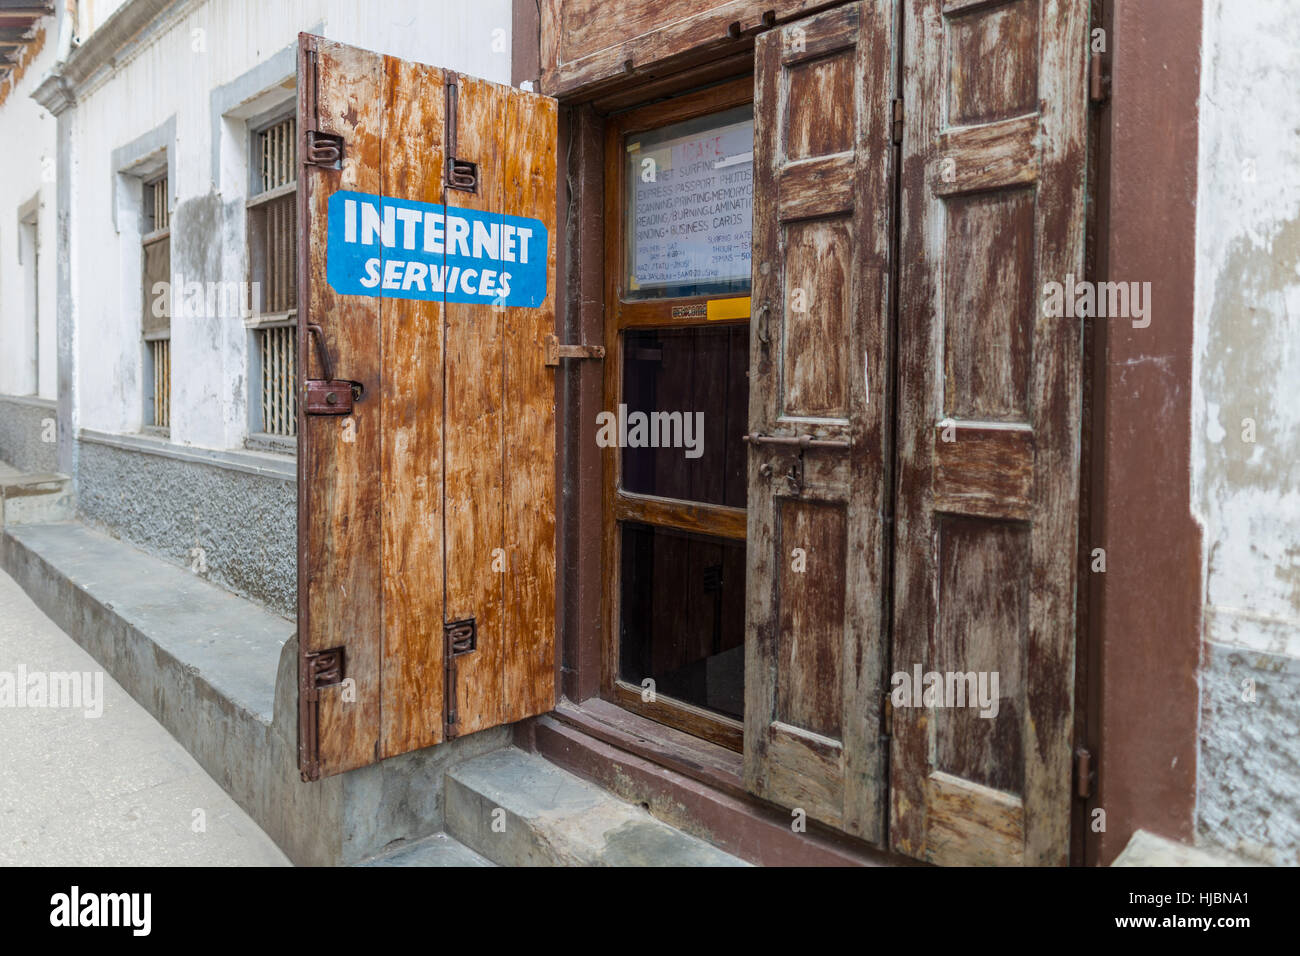 Stone Town, Zanzibar, Tanzania- October 2016:Internet usage is becoming more common in poor parts of Africa like - Stock Image